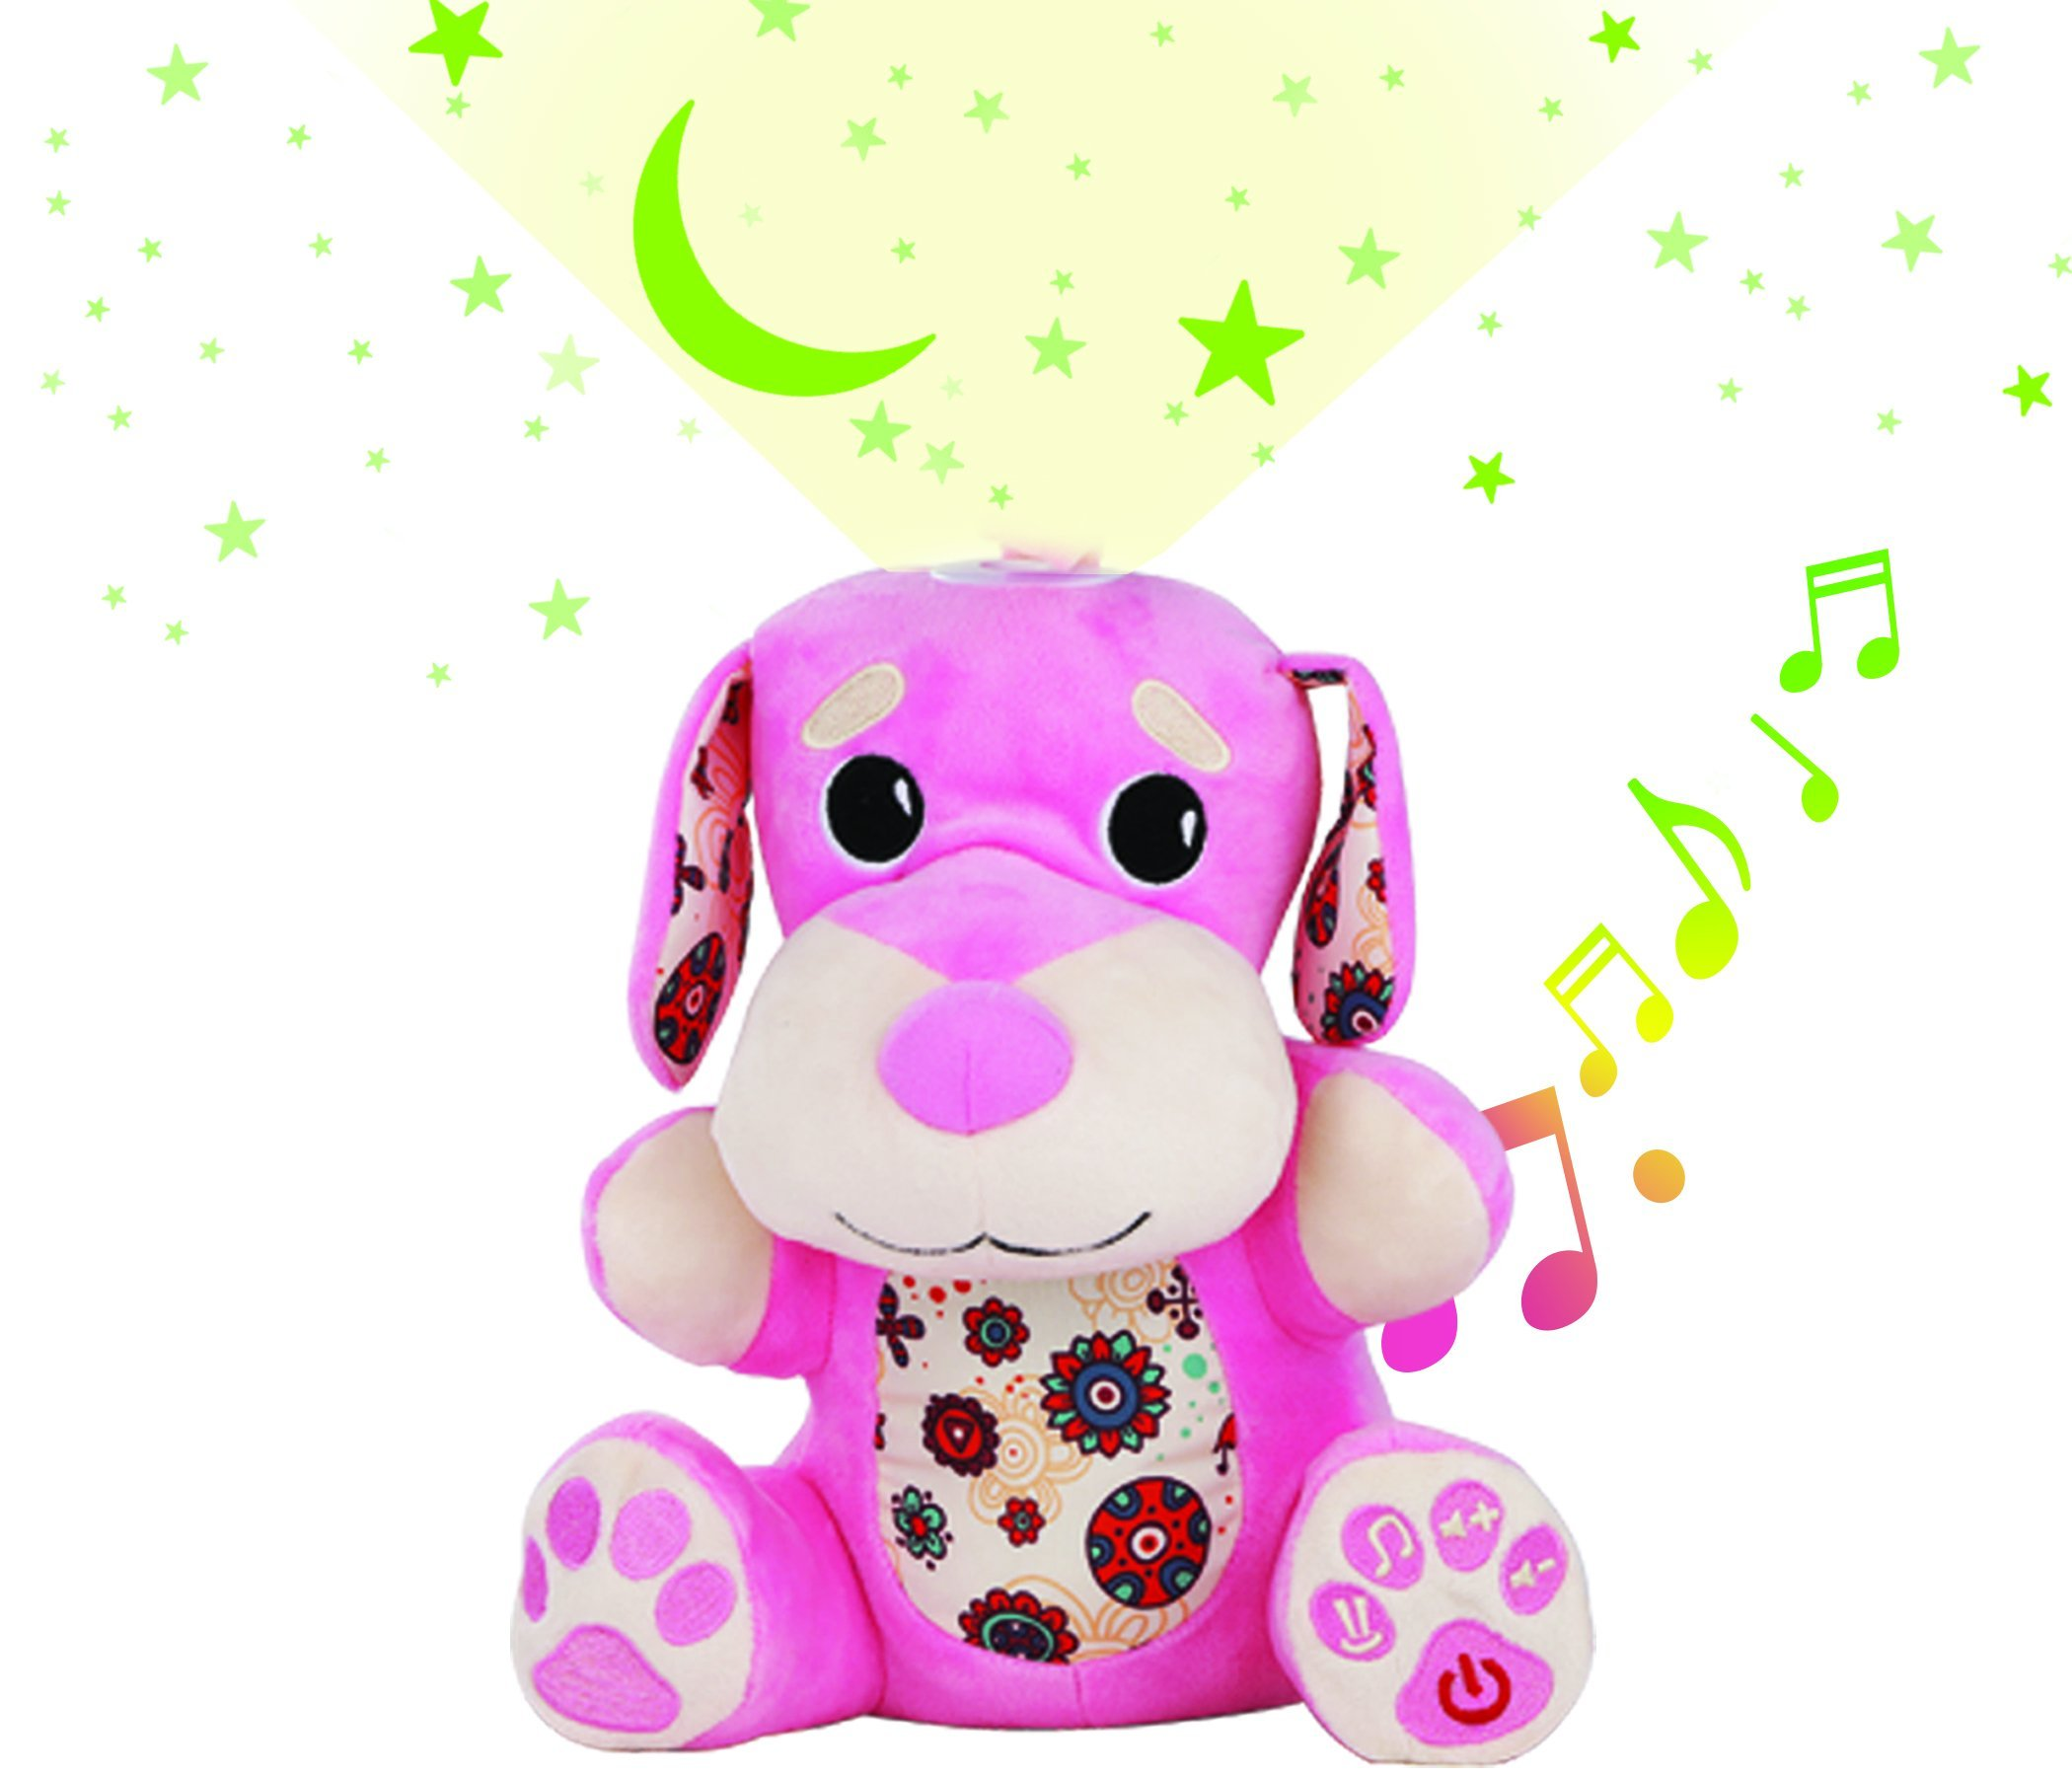 Stella Baby Sound Machine - Nursery Musical Soother Star Projector Toy, 6 Pacifying Lullaby Tones, Perfect Sleeping Shusher Aid System, (Pink)